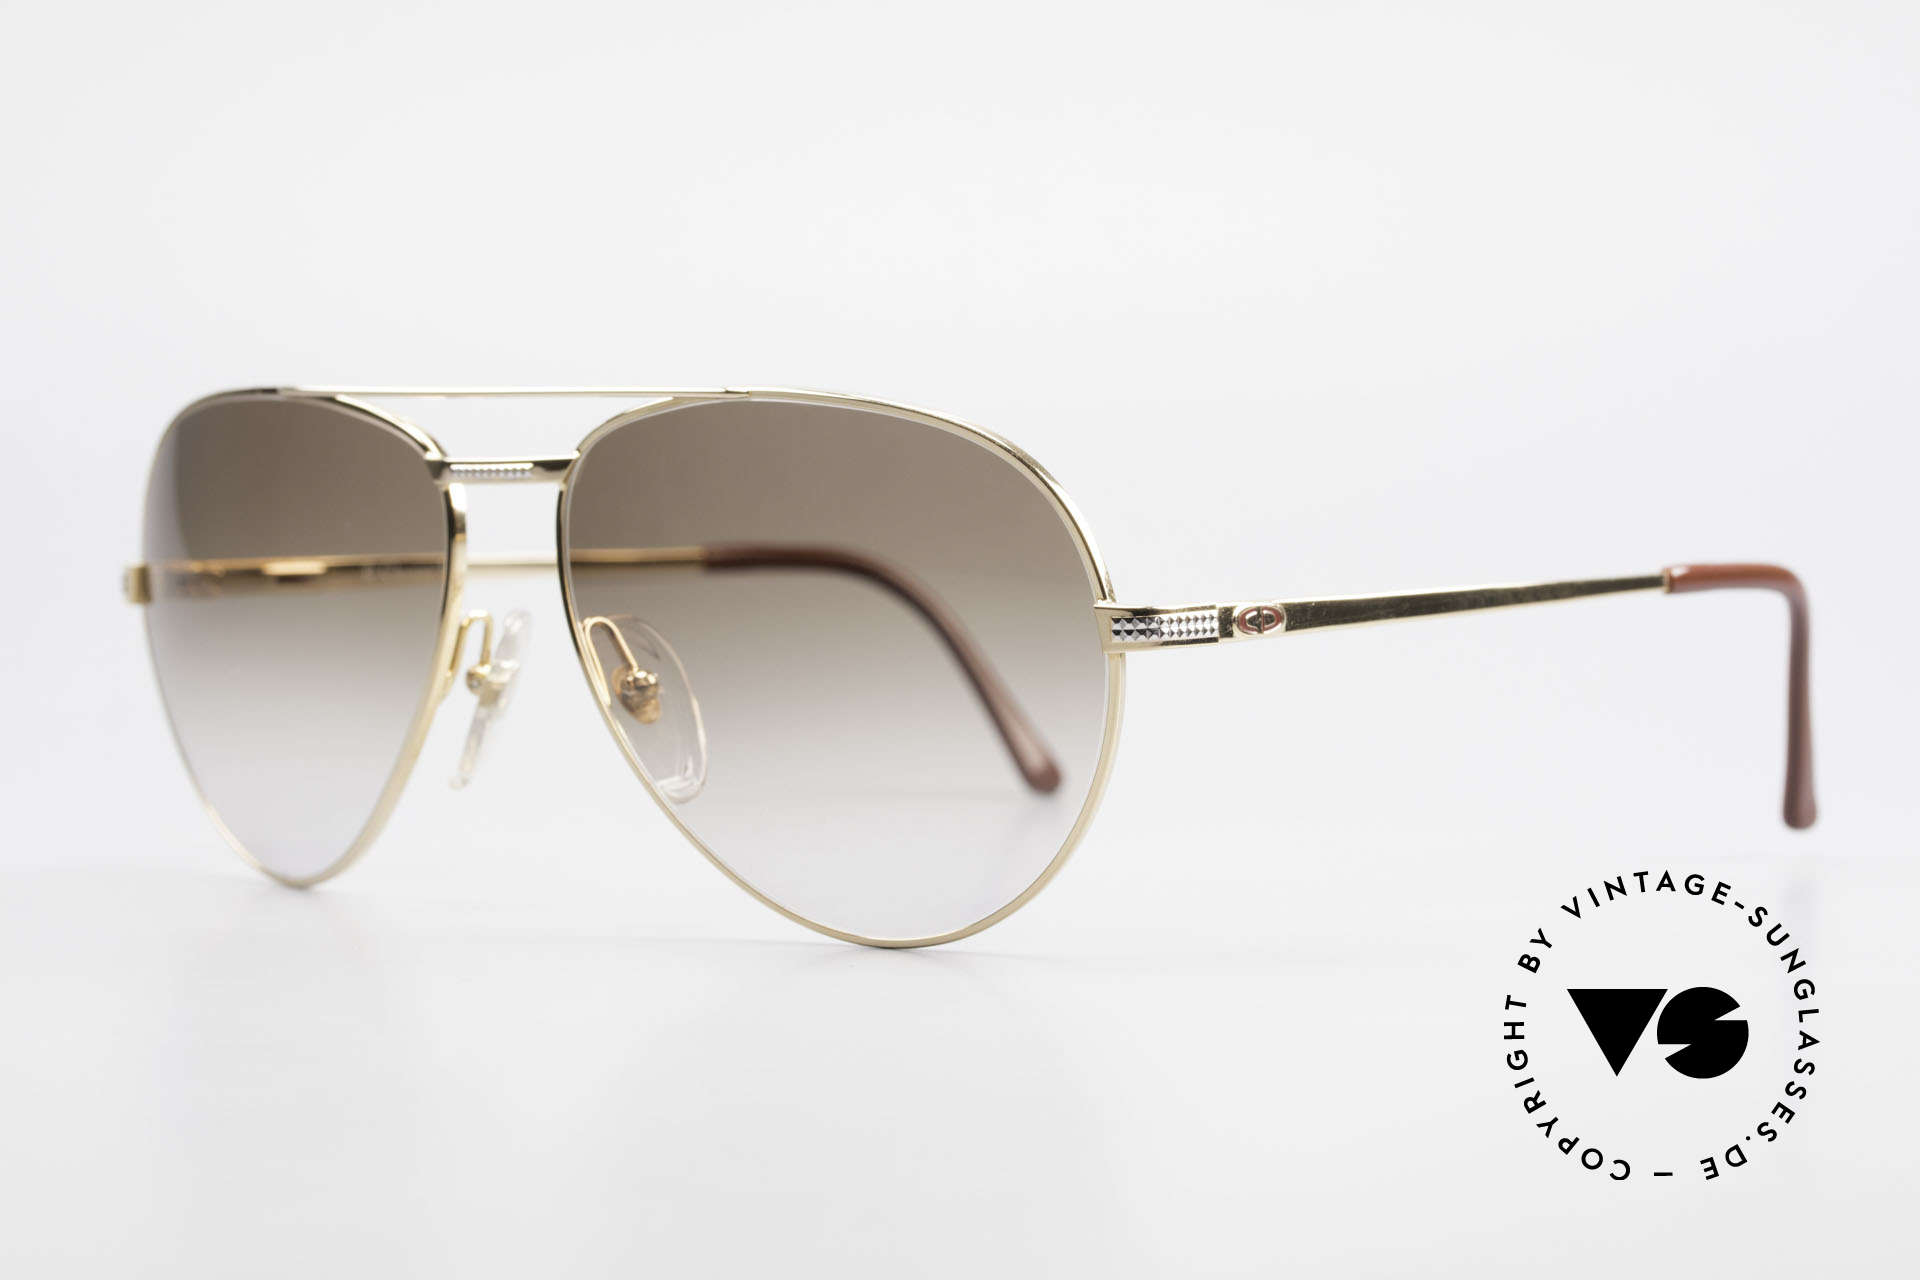 Christian Dior 2780 Gold-Plated 90's Aviator Frame, 1 class wearing comfort: flexible spring hinges, Made for Men